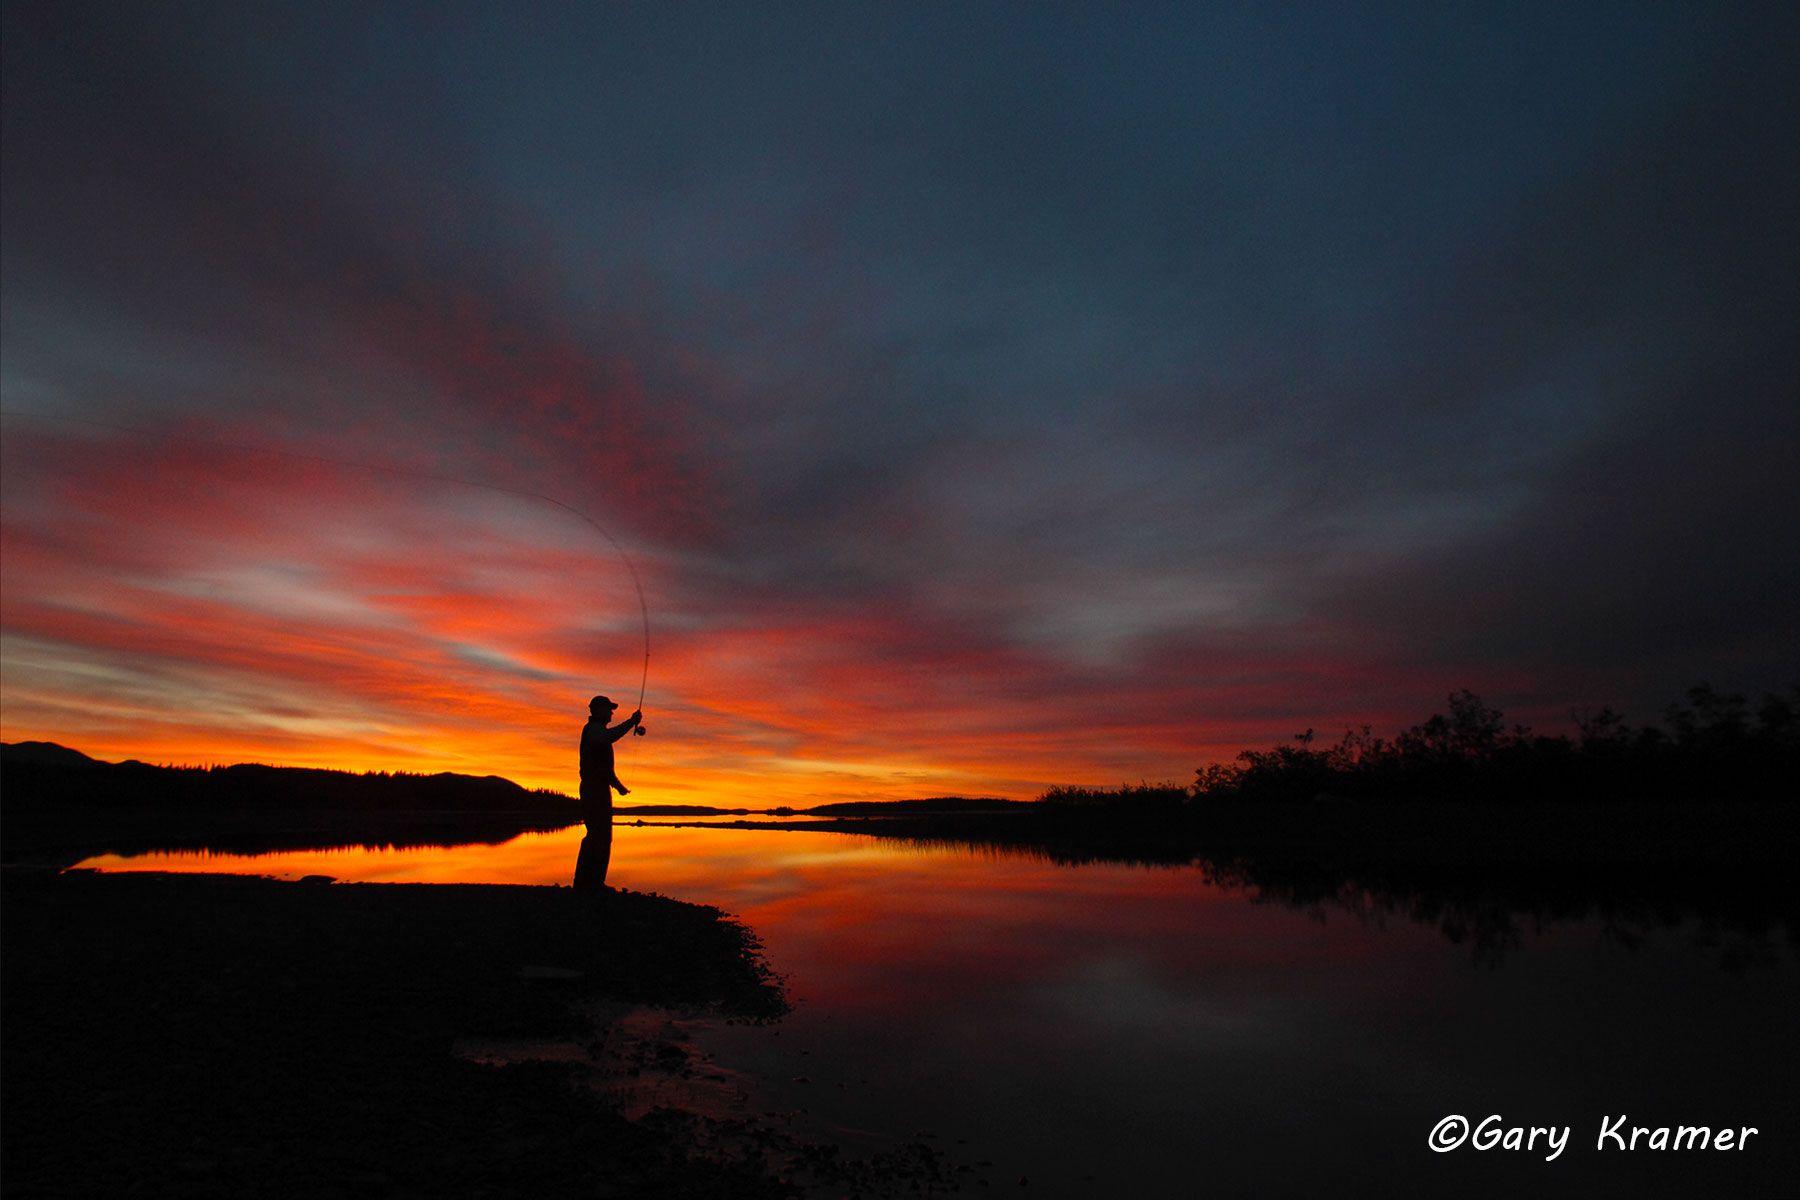 Fly Fishing at Sunset/Sunrise - GFS#135d